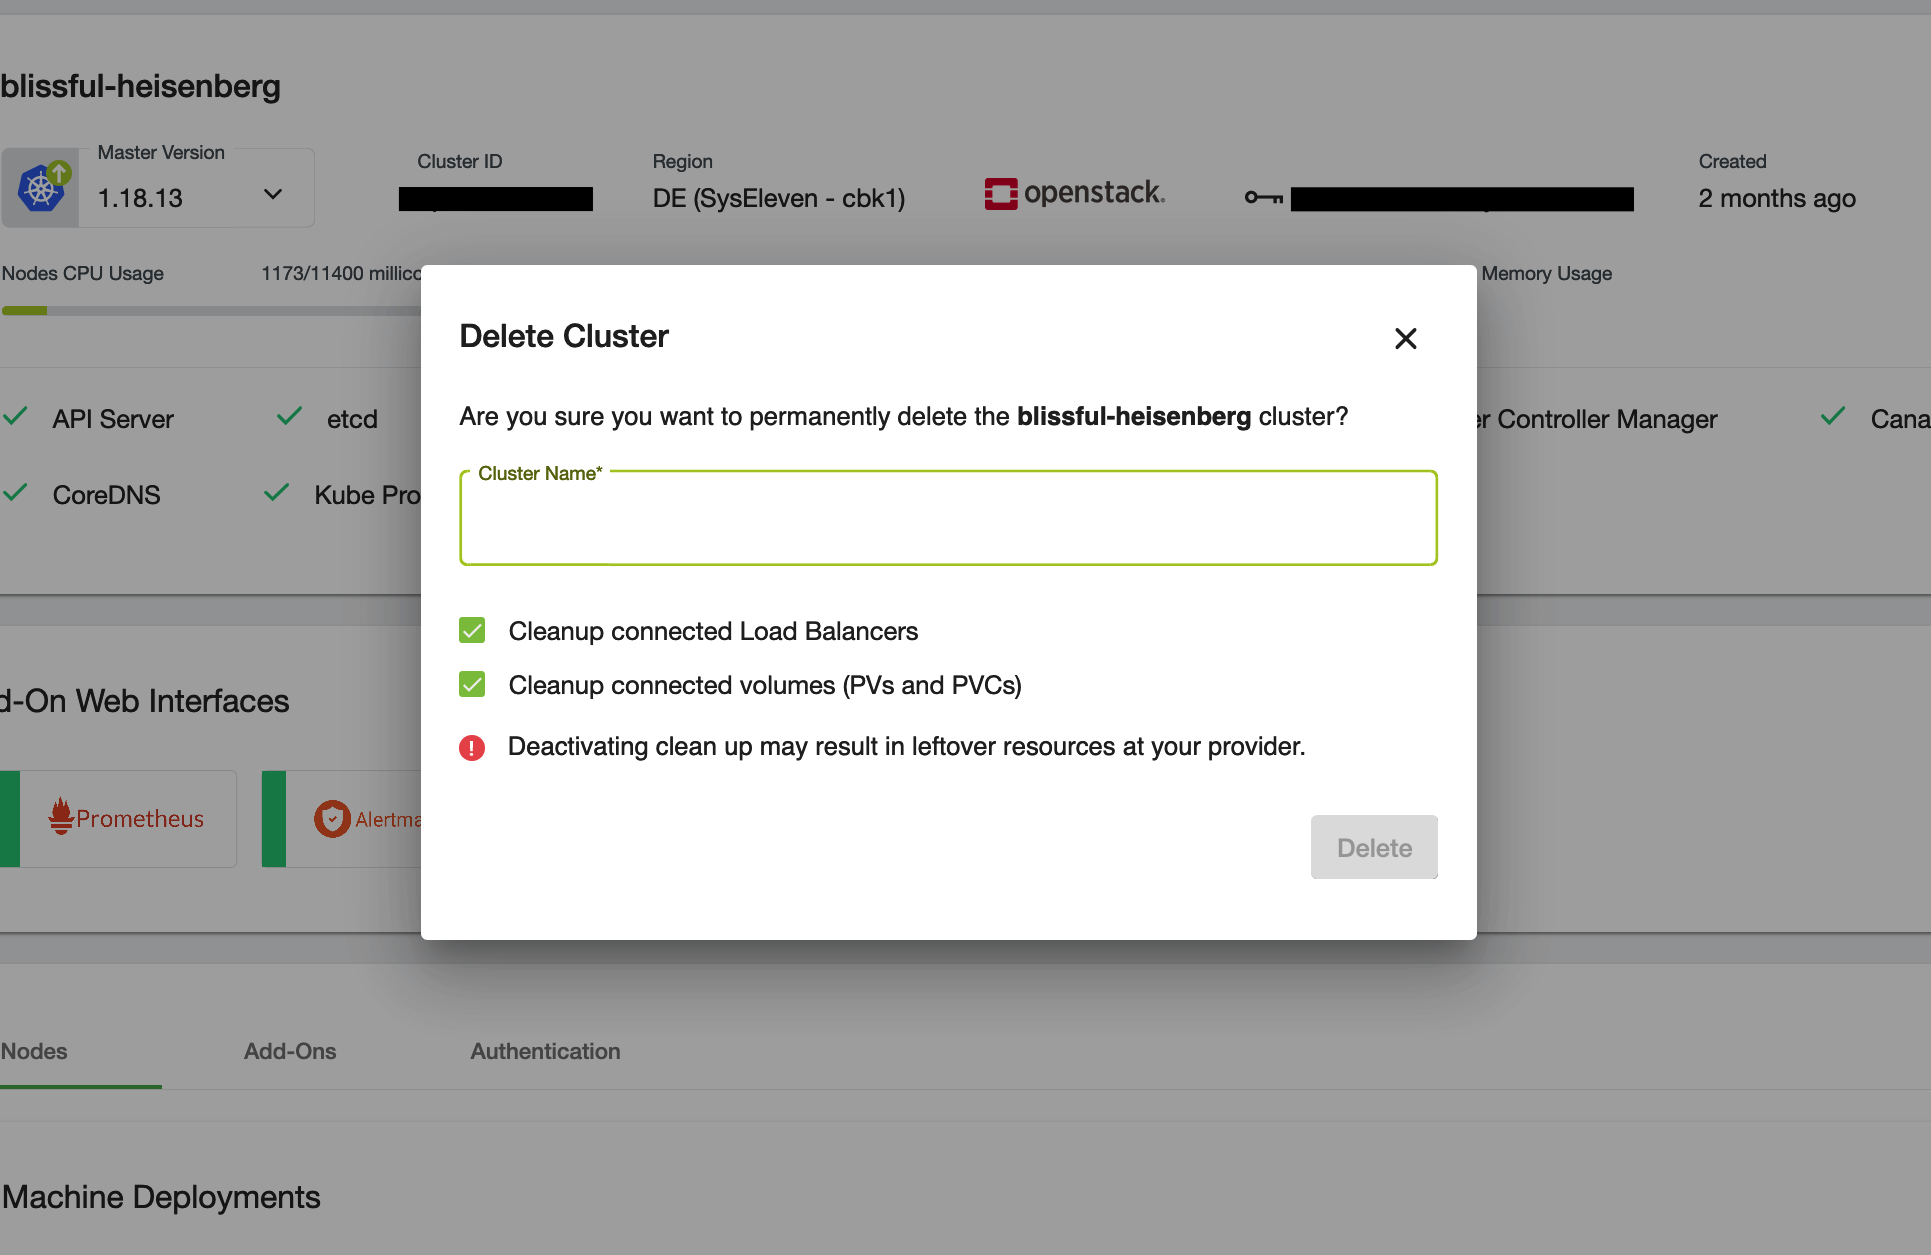 Confirmation dialog for the cluster deletion